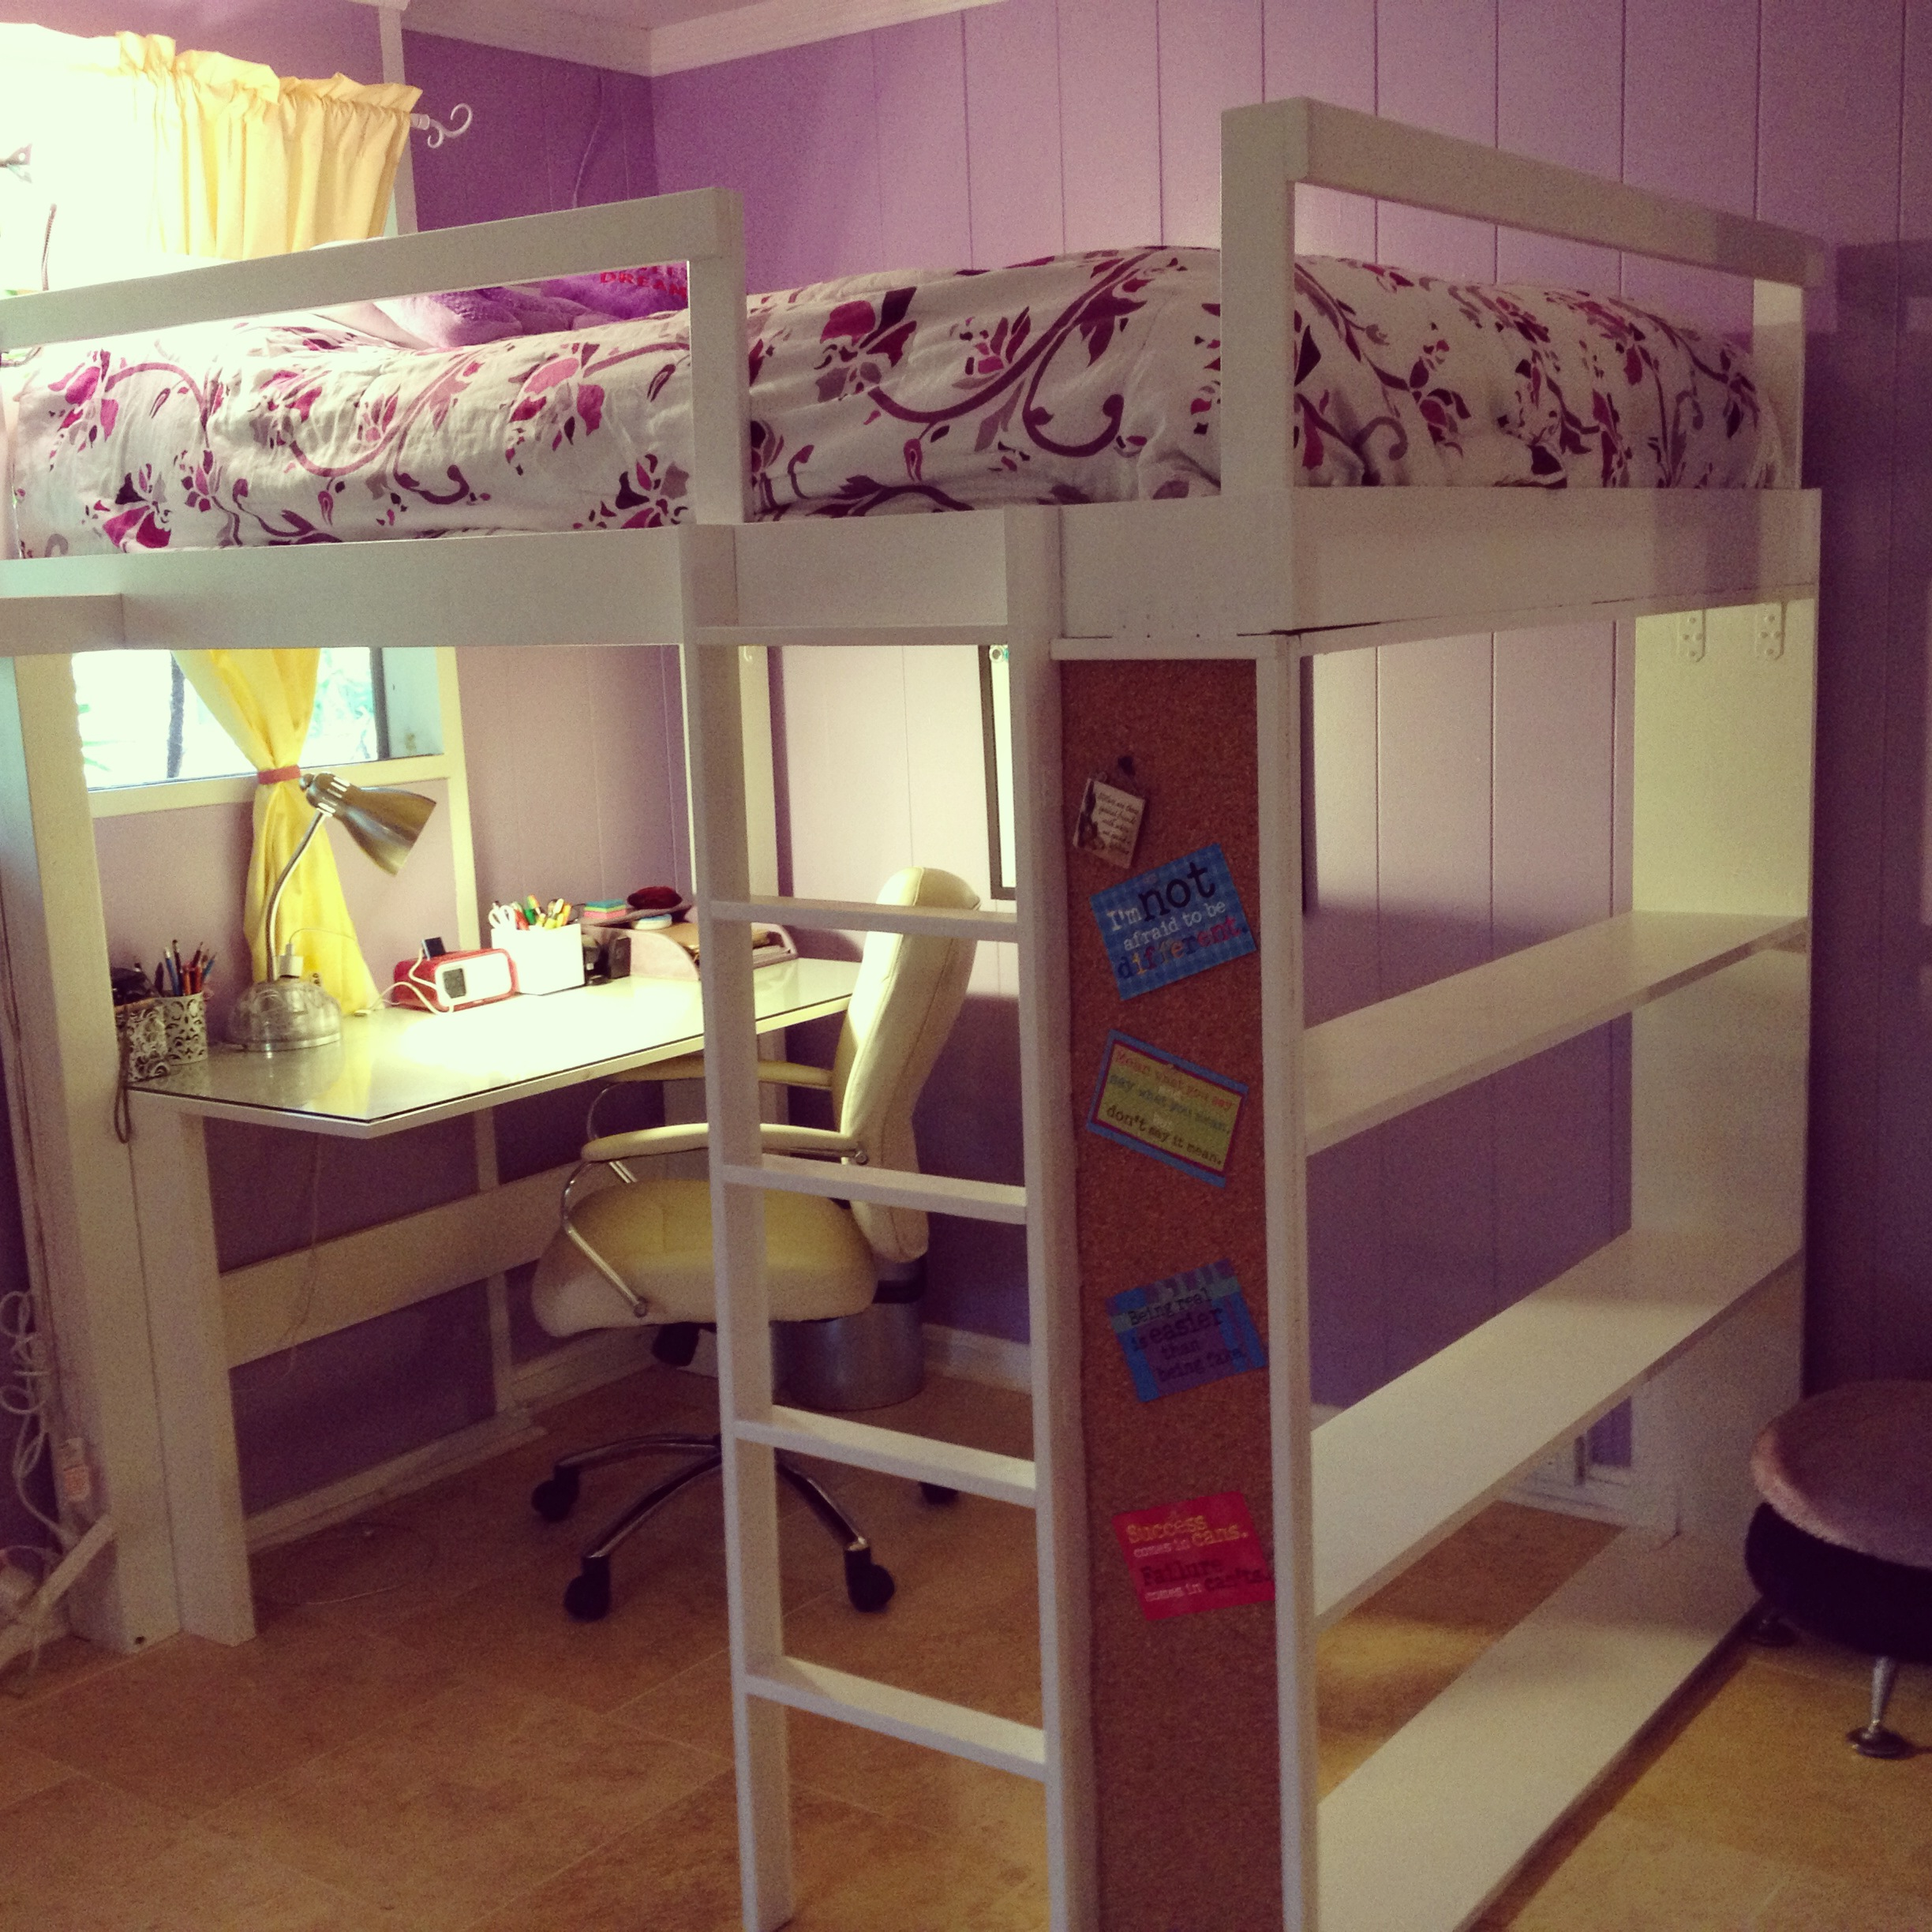 Bedroom loft for teens - Bedroom Loft For Teens 7